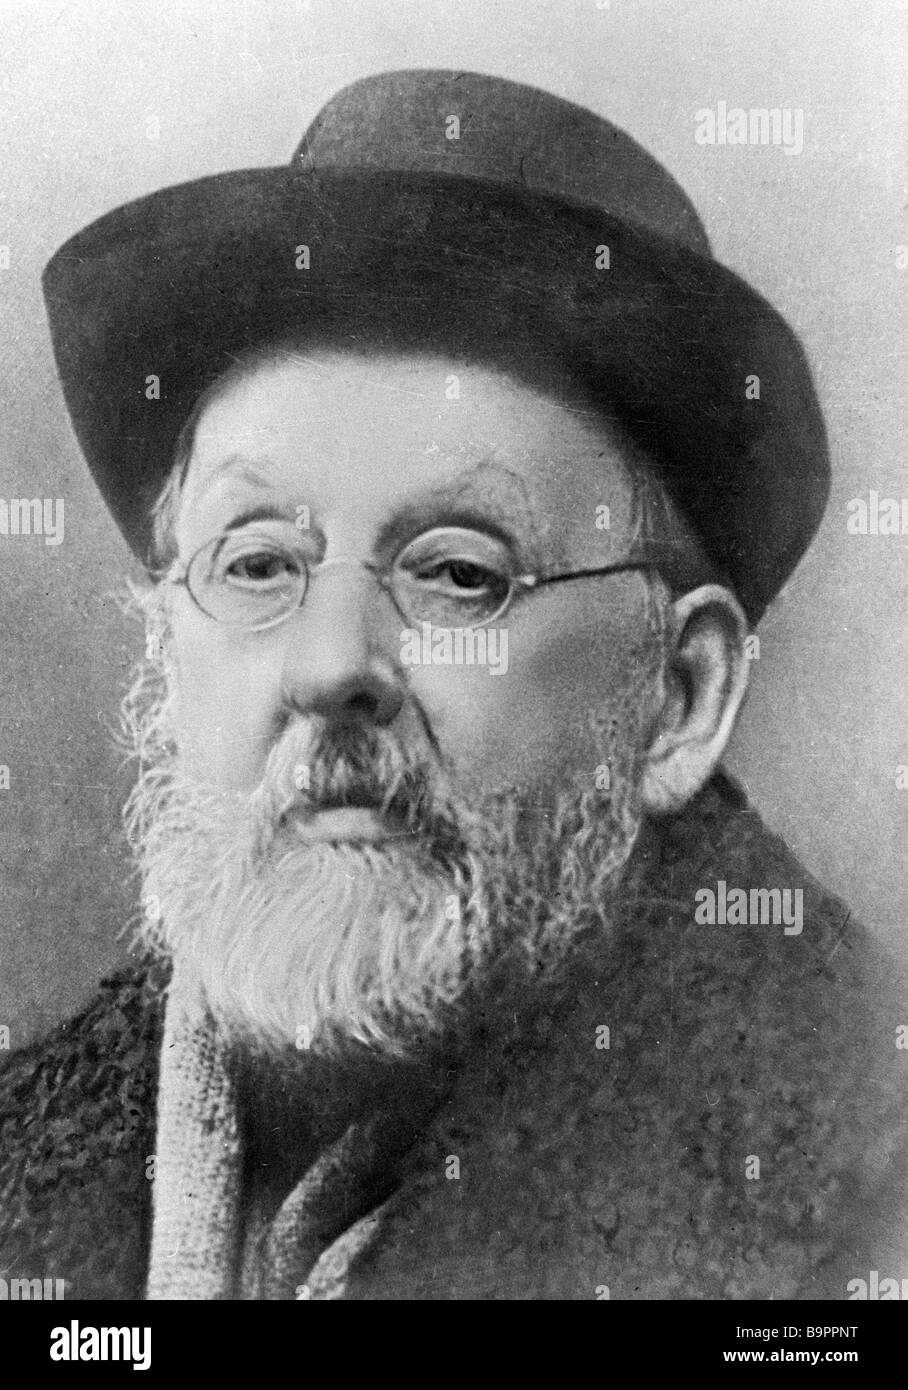 Creator of periodic table image collections periodic table images russian inventor stock photos russian inventor stock images alamy russian soviet scientist and inventor konstantin tsiolkovsky gamestrikefo Gallery